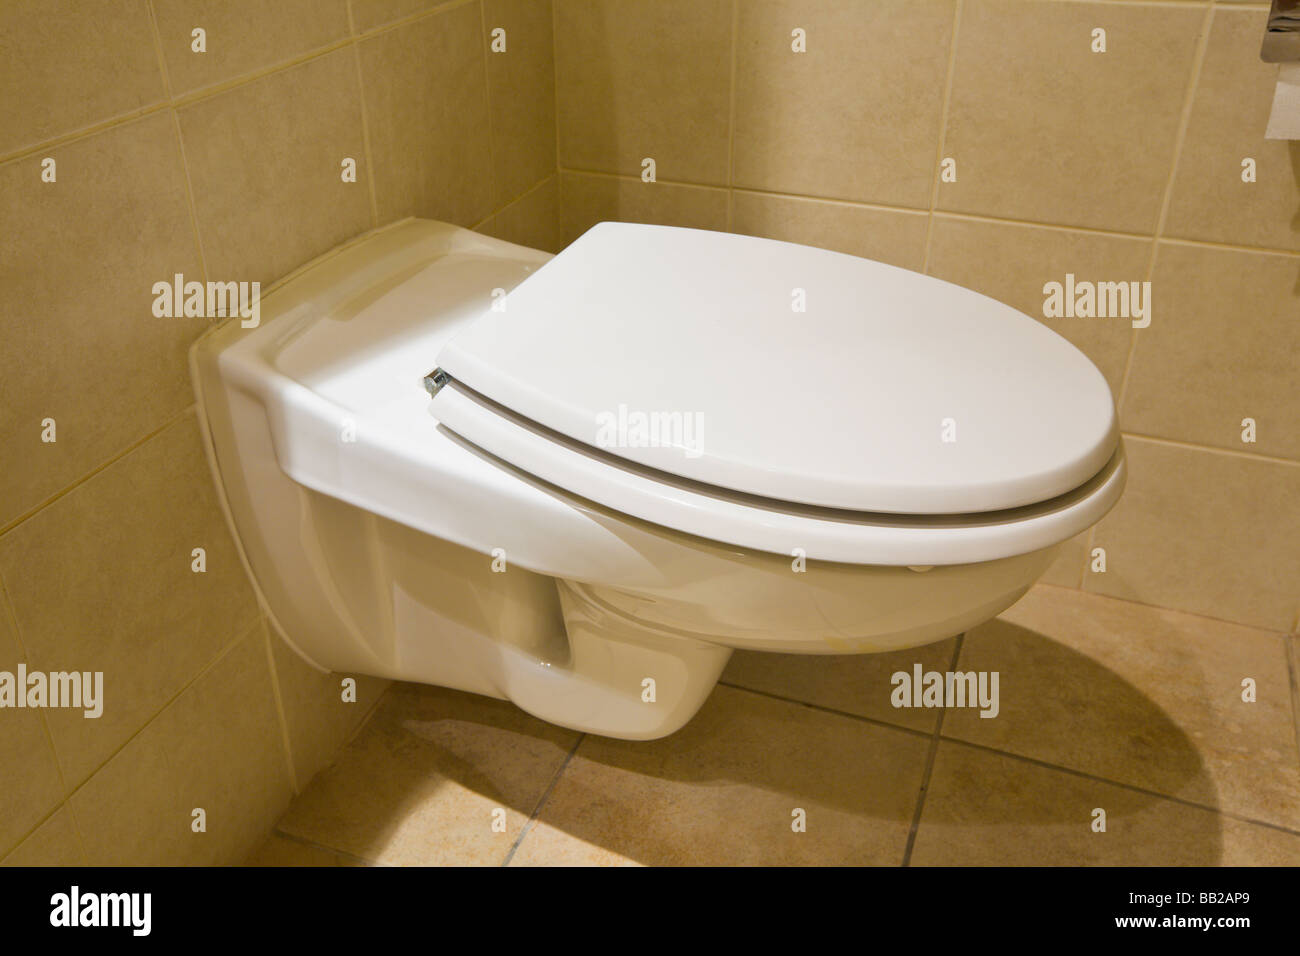 Wall Hung Toilet Stock Photo 24023953 Alamy